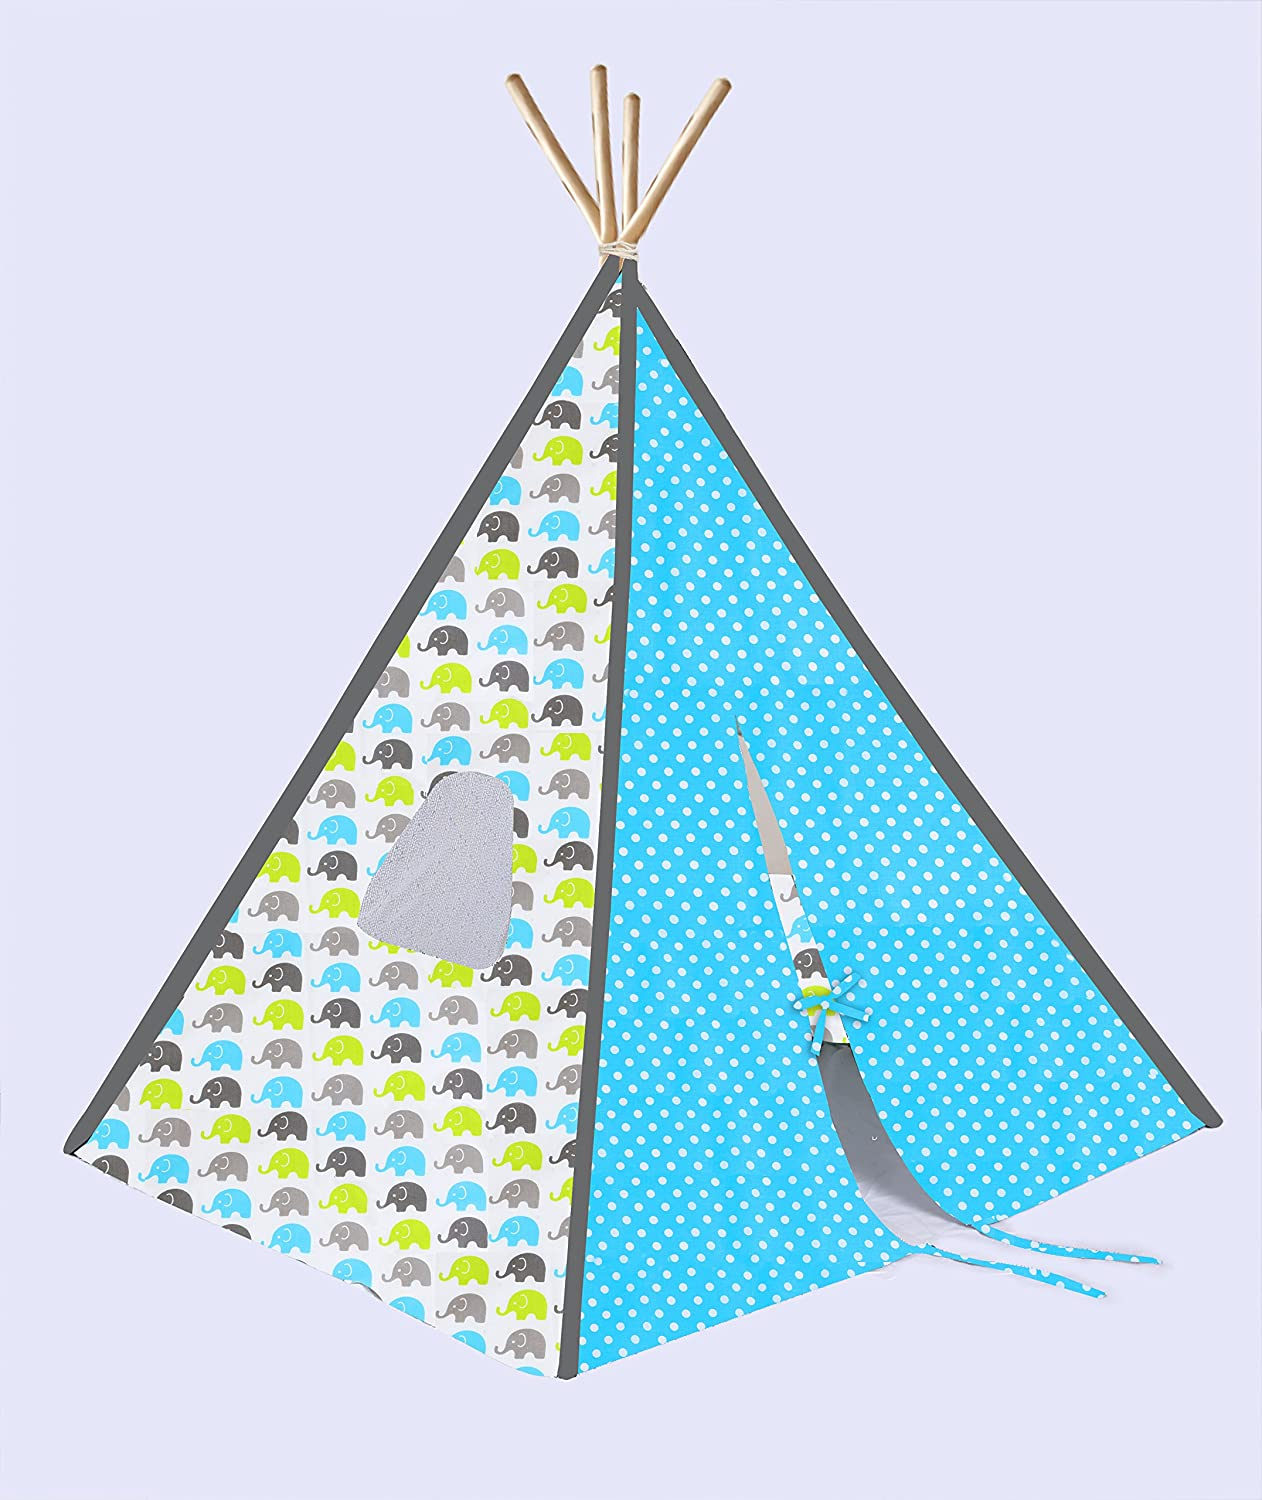 Bacati Elephants Unisex Teepee Tent für Kids, 100% Cotton Breathable Percale Fabric Cover, Aqua/Lime/Grey